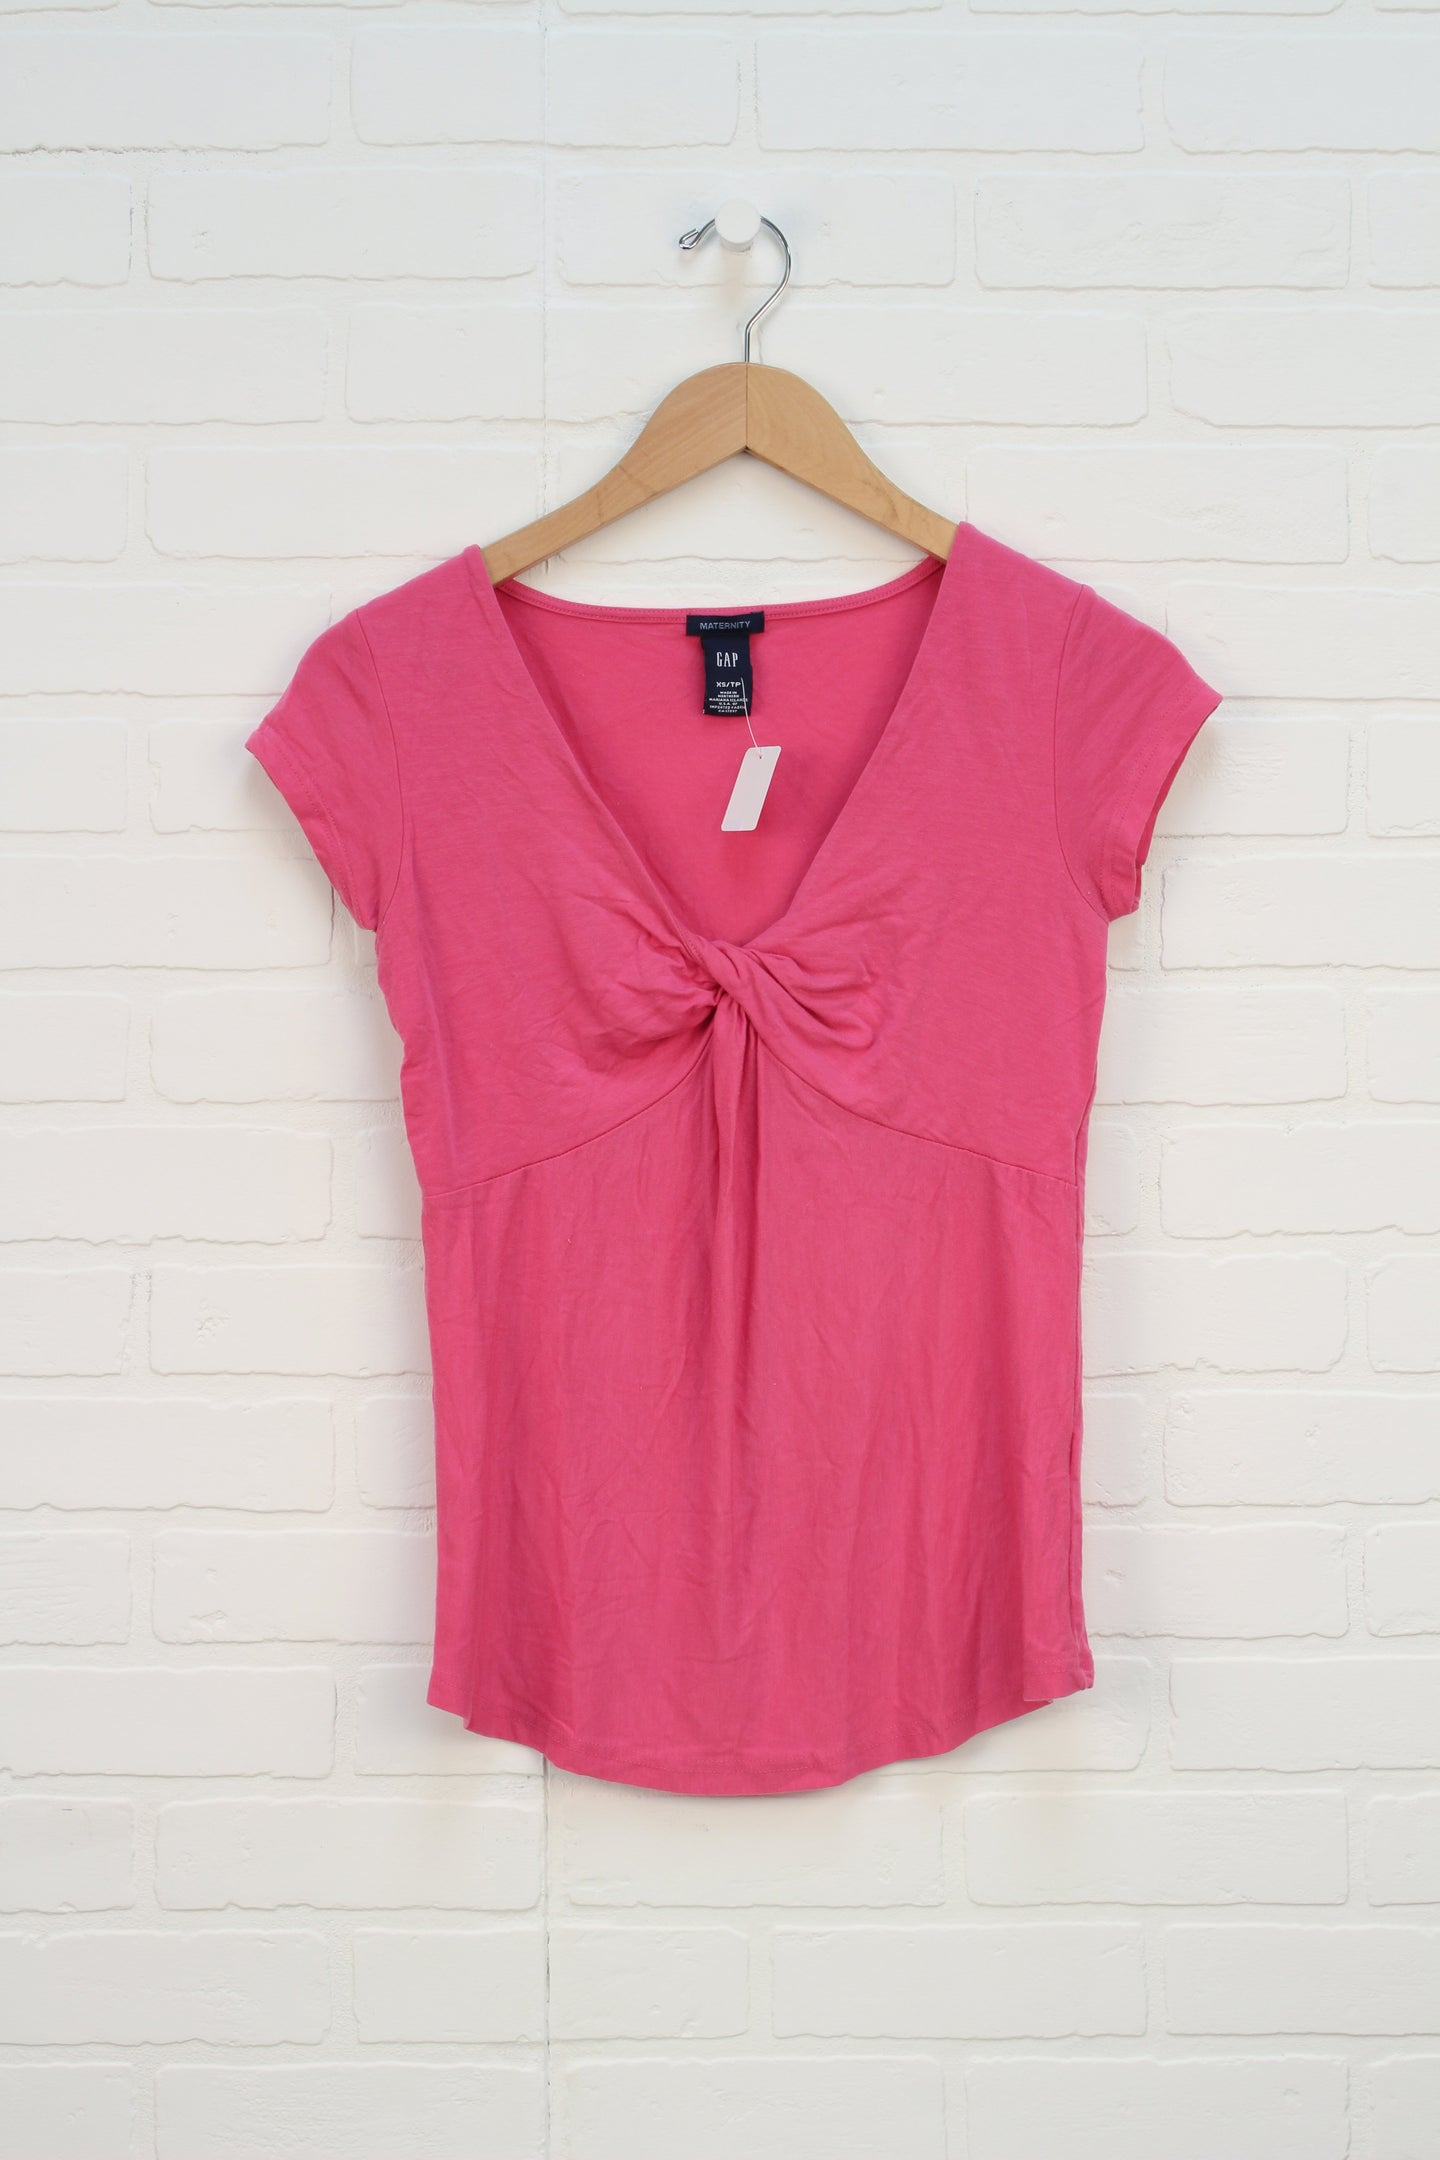 PInk Maternity Top (Maternity Size XS)